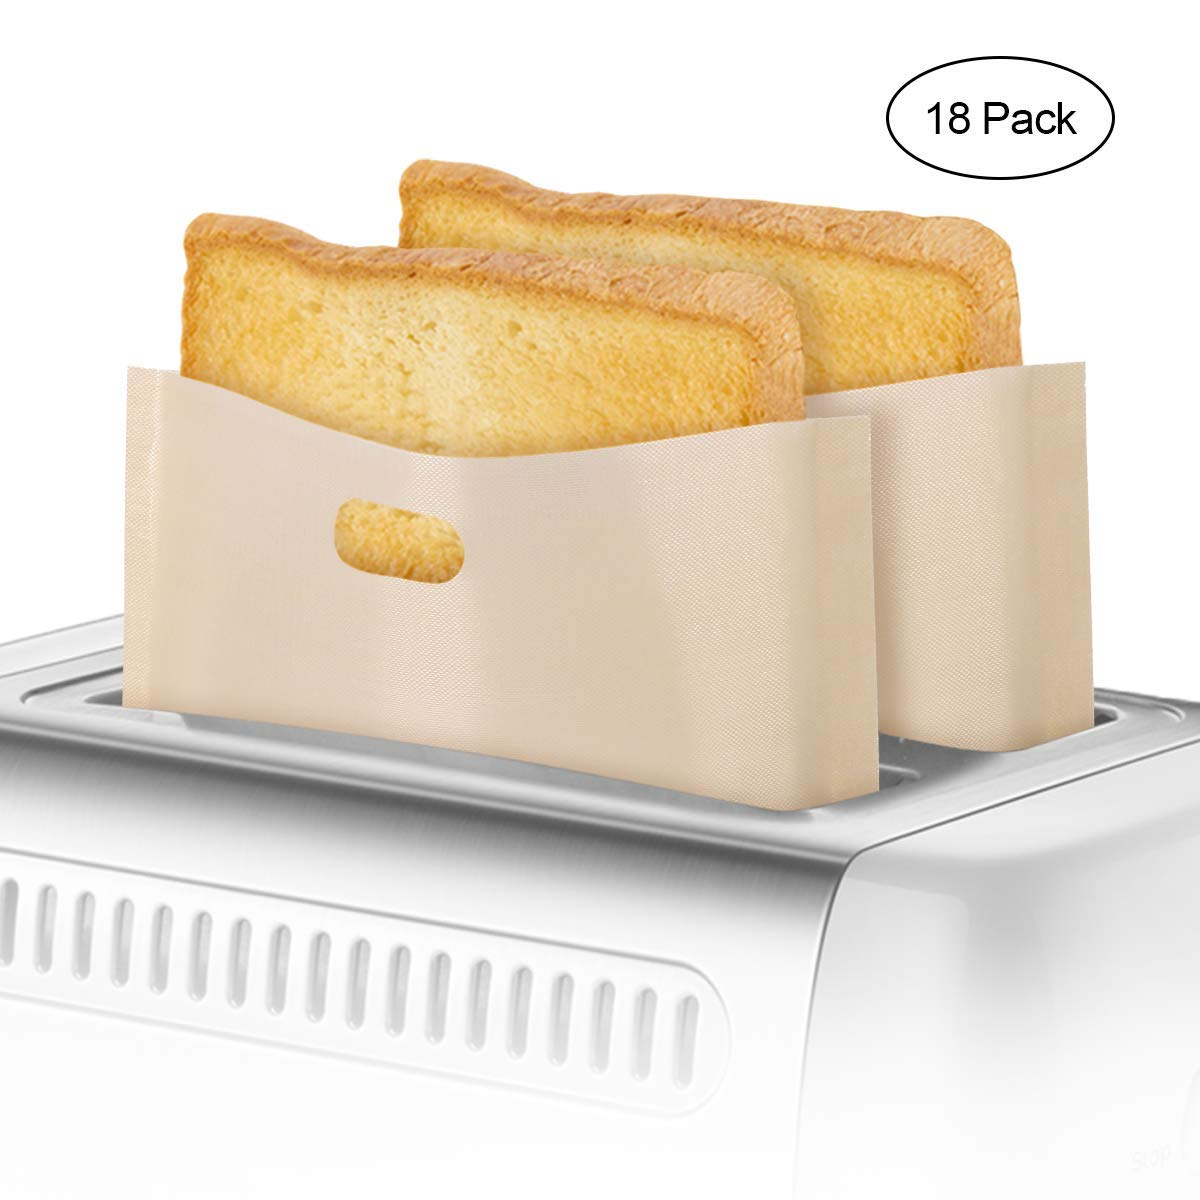 3 Sizes 18 Pack Toaster Bags Non-Stick Reusable Toaster Grilled Cheese Bags FDA Approved Food Grade Teflon Toaster Bags for Grilled Cheese Sandwiches, Chicken, Nuggets, Panini and Garlic Toasts by Makerfun